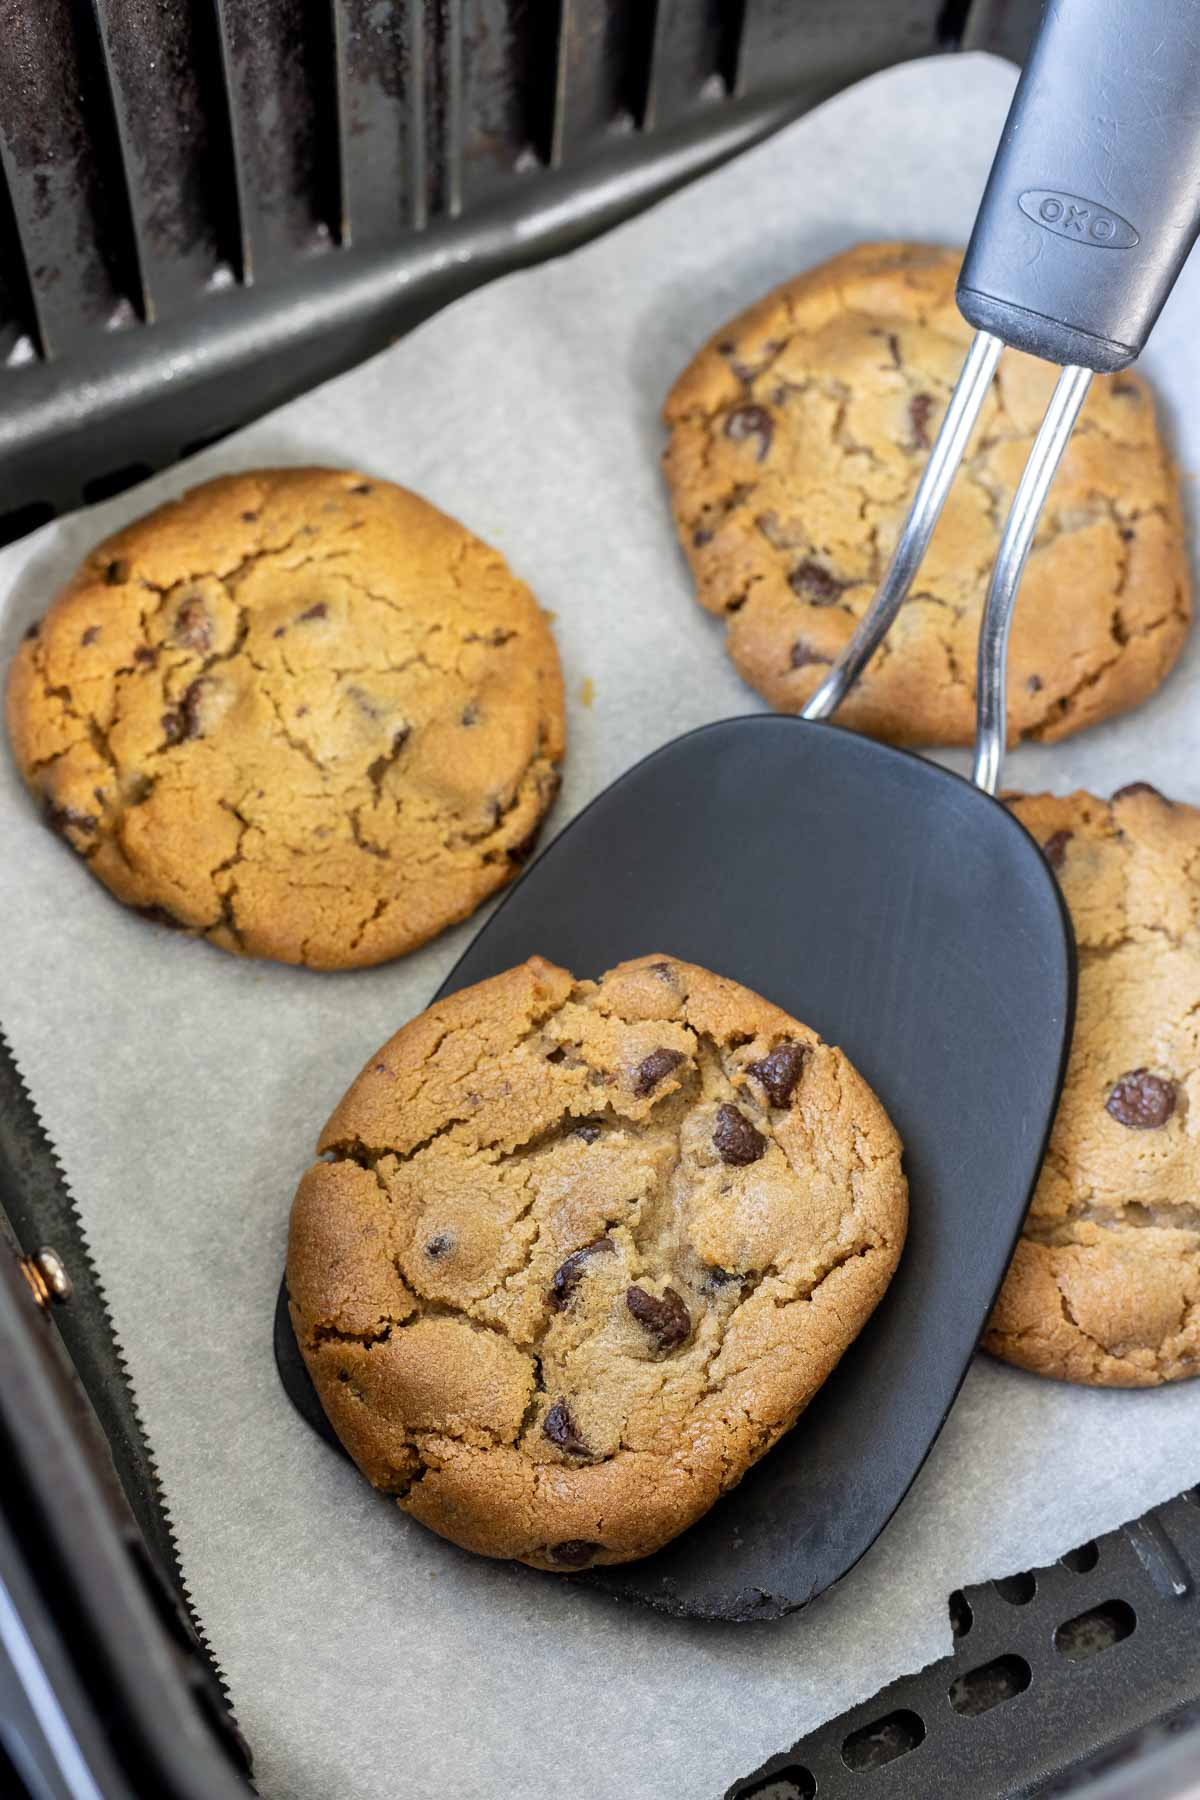 spatula lifting baked cookie out of air fryer basket